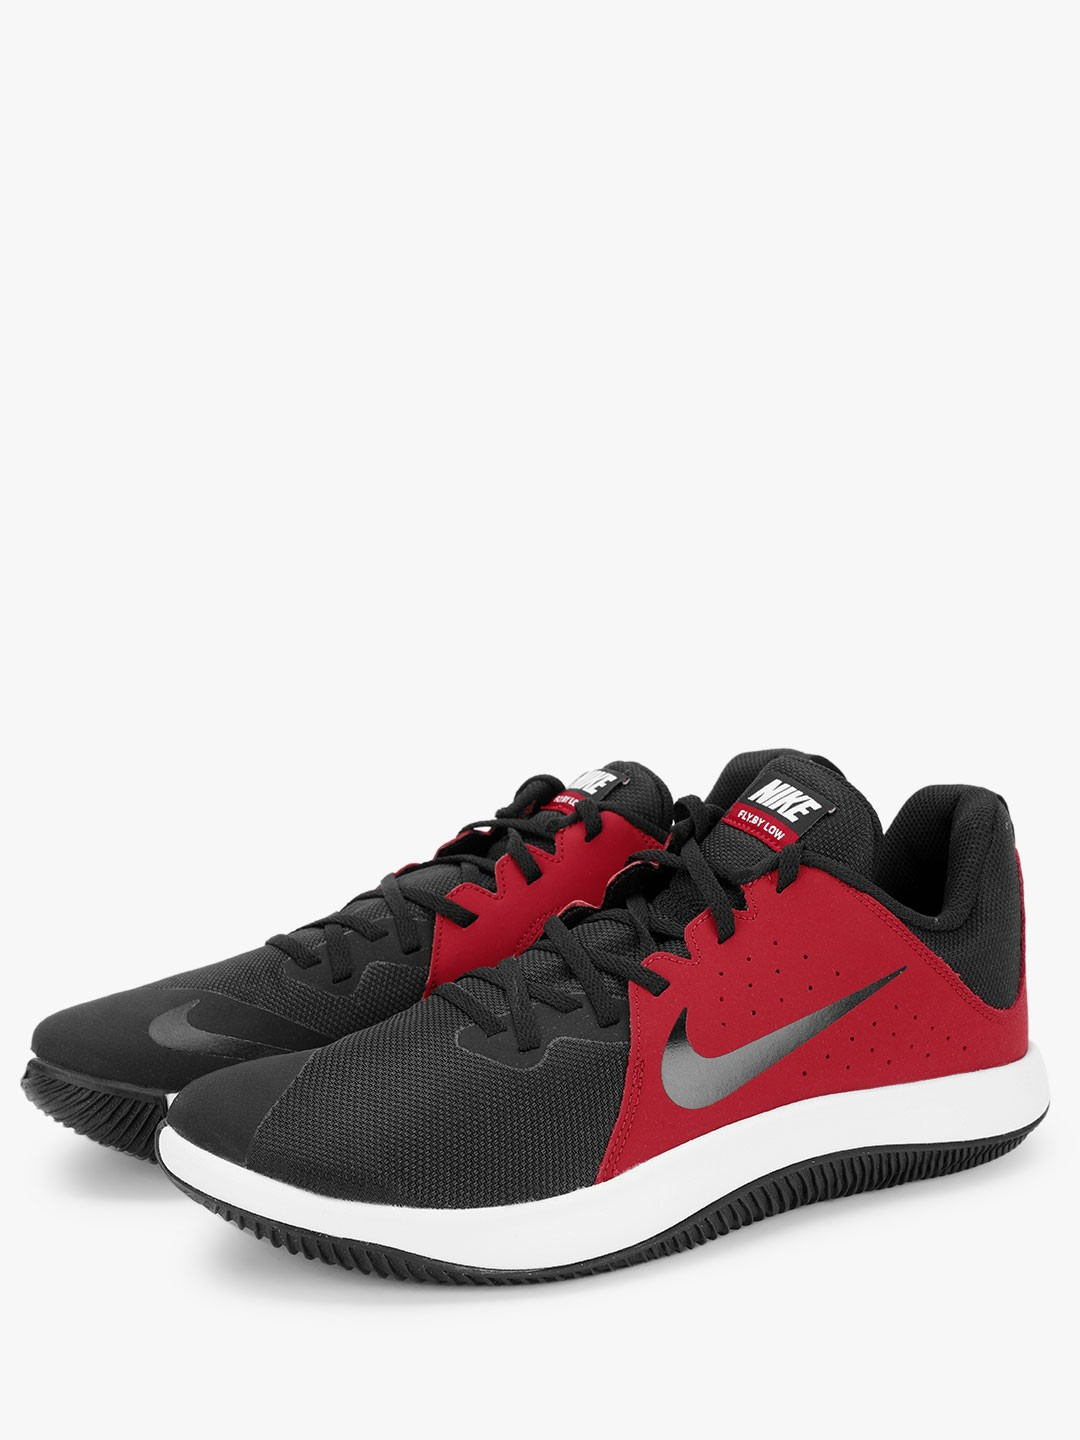 Where To Buy Fly London Shoes